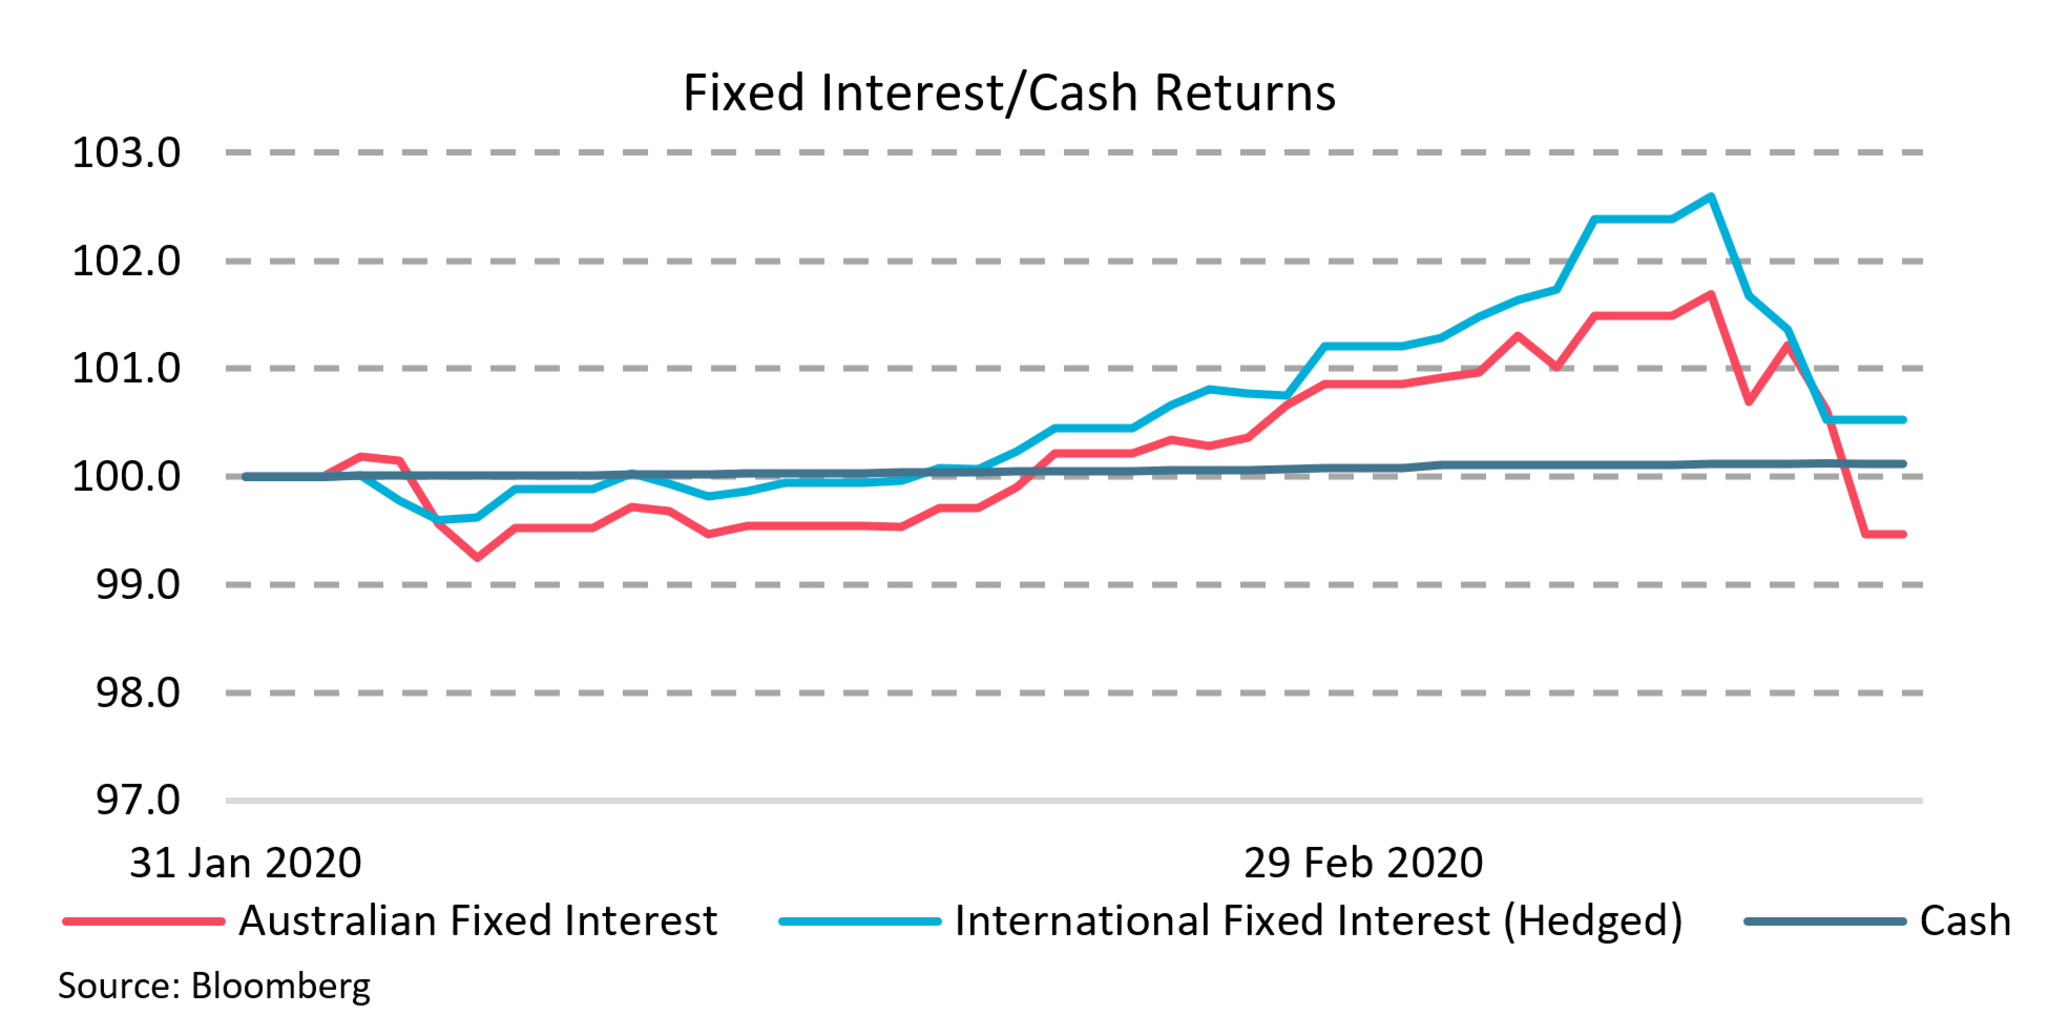 This charts displays the significance of the recent market sell-off, being on average a range of 2% for Fixed interest